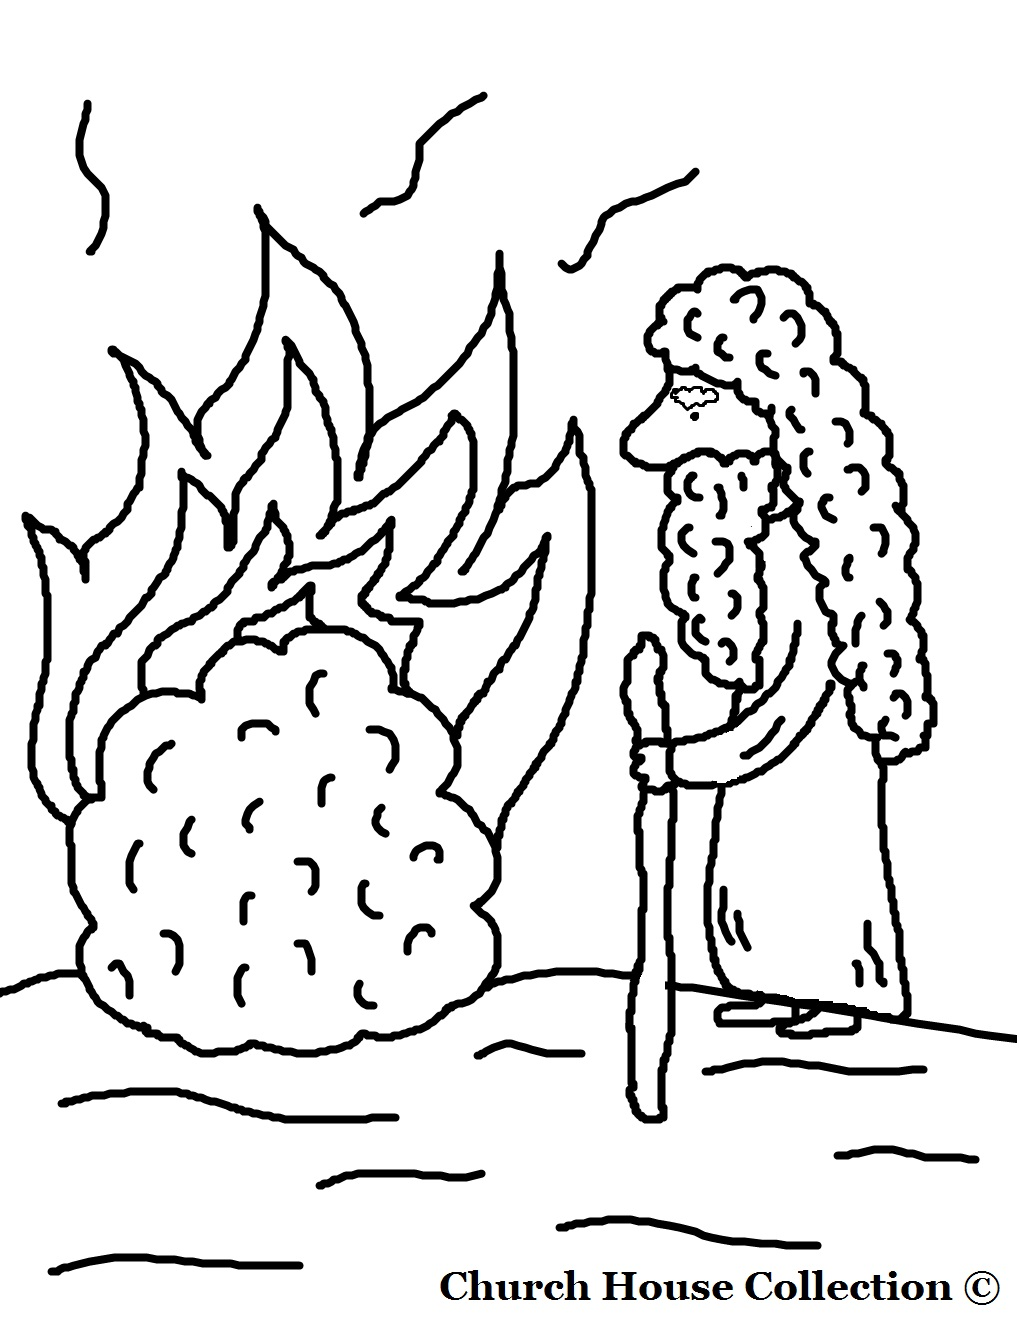 Burning Bush Drawing at GetDrawings.com | Free for personal use ...